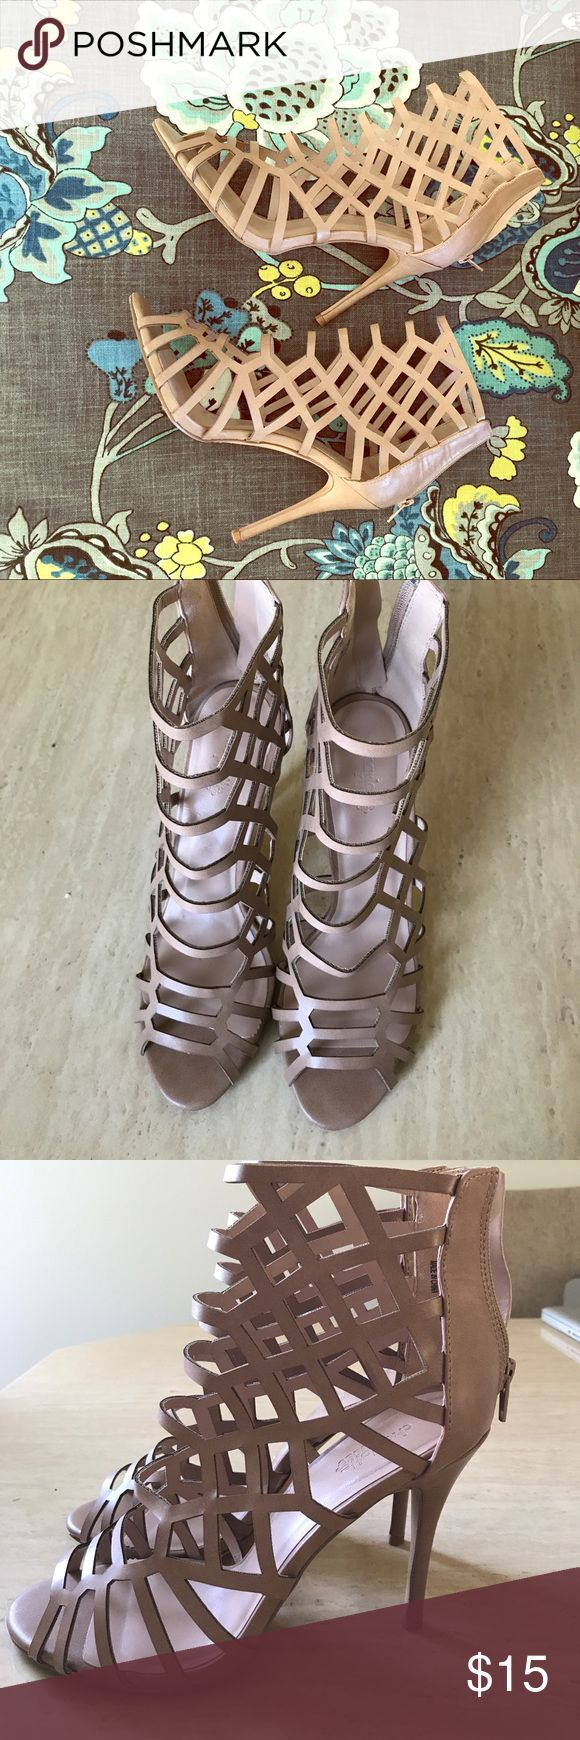 Nude Gladiador Sandals 4 in heels, Brand new condition. Zíper on the back. Size 9 Charlotte Russe Shoes Sandals